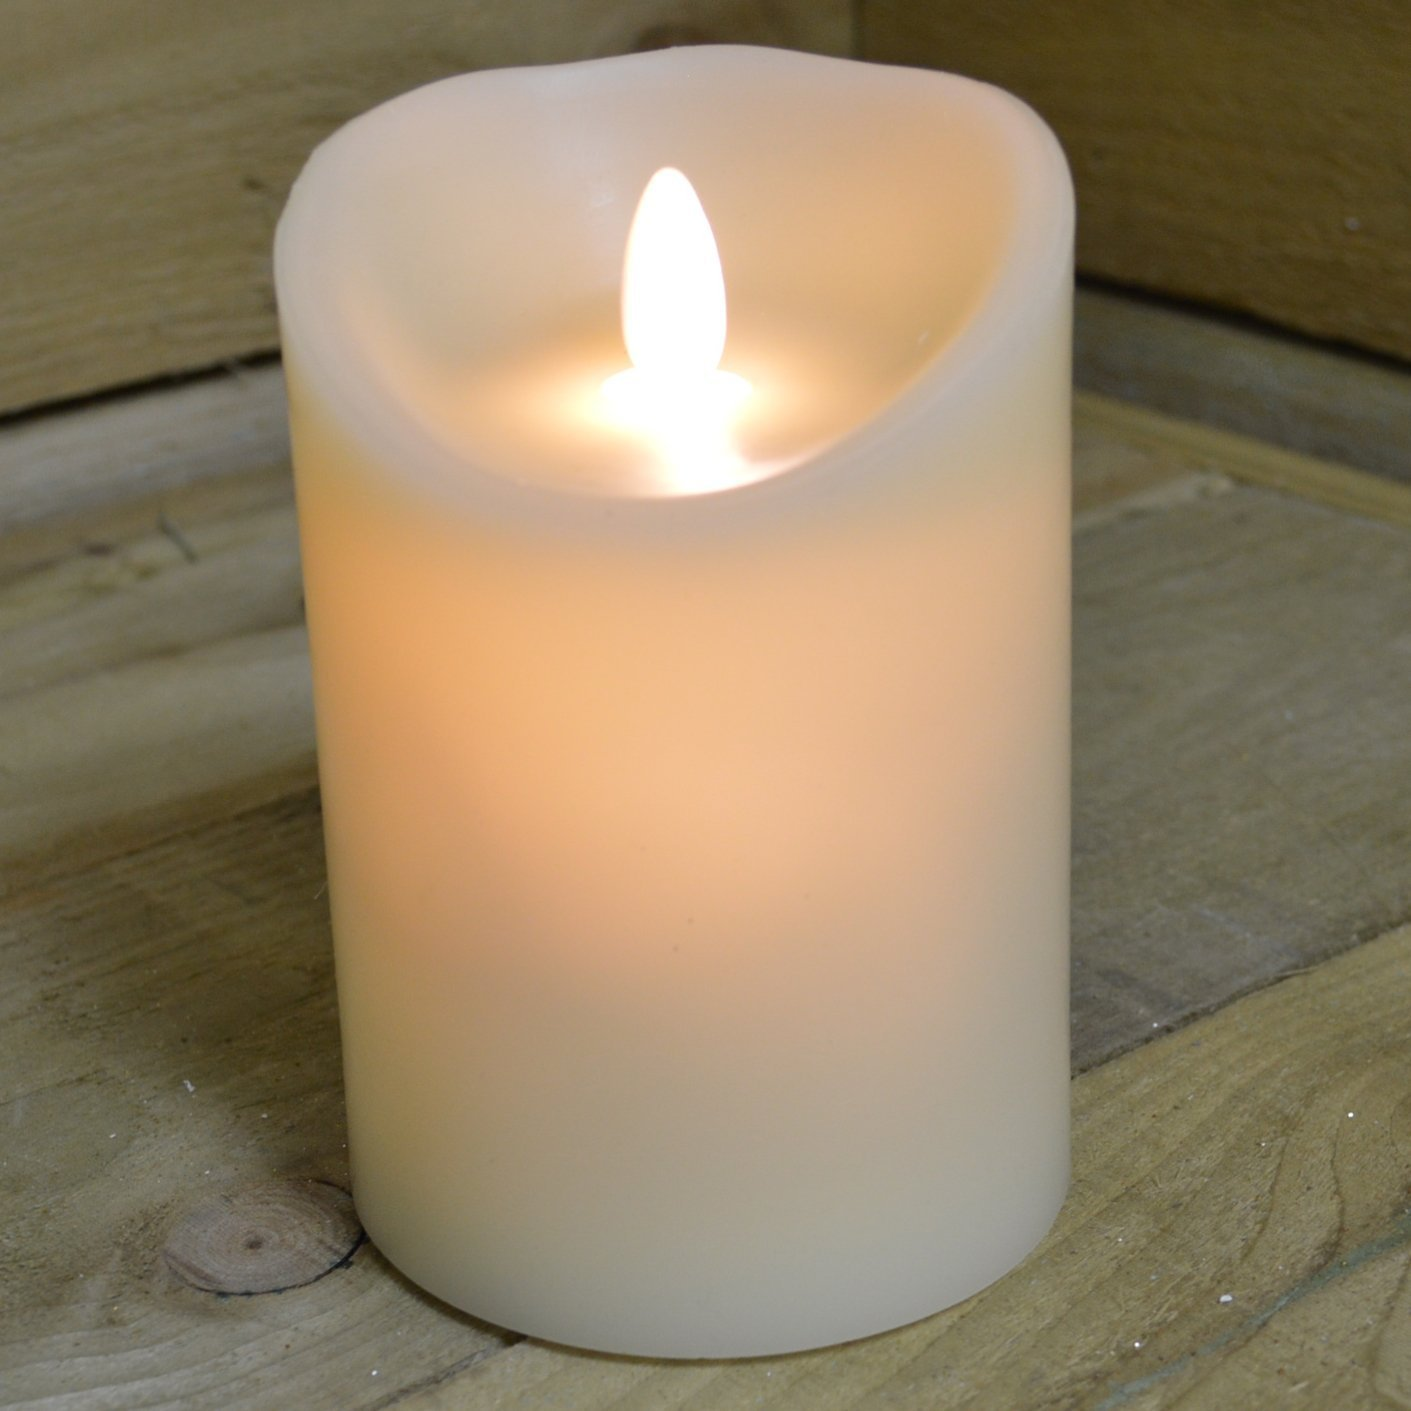 Premier Battery Operated Real Wax Candle with Dancing Flame in Ivory 13cm - Christmas Olore Home 243534